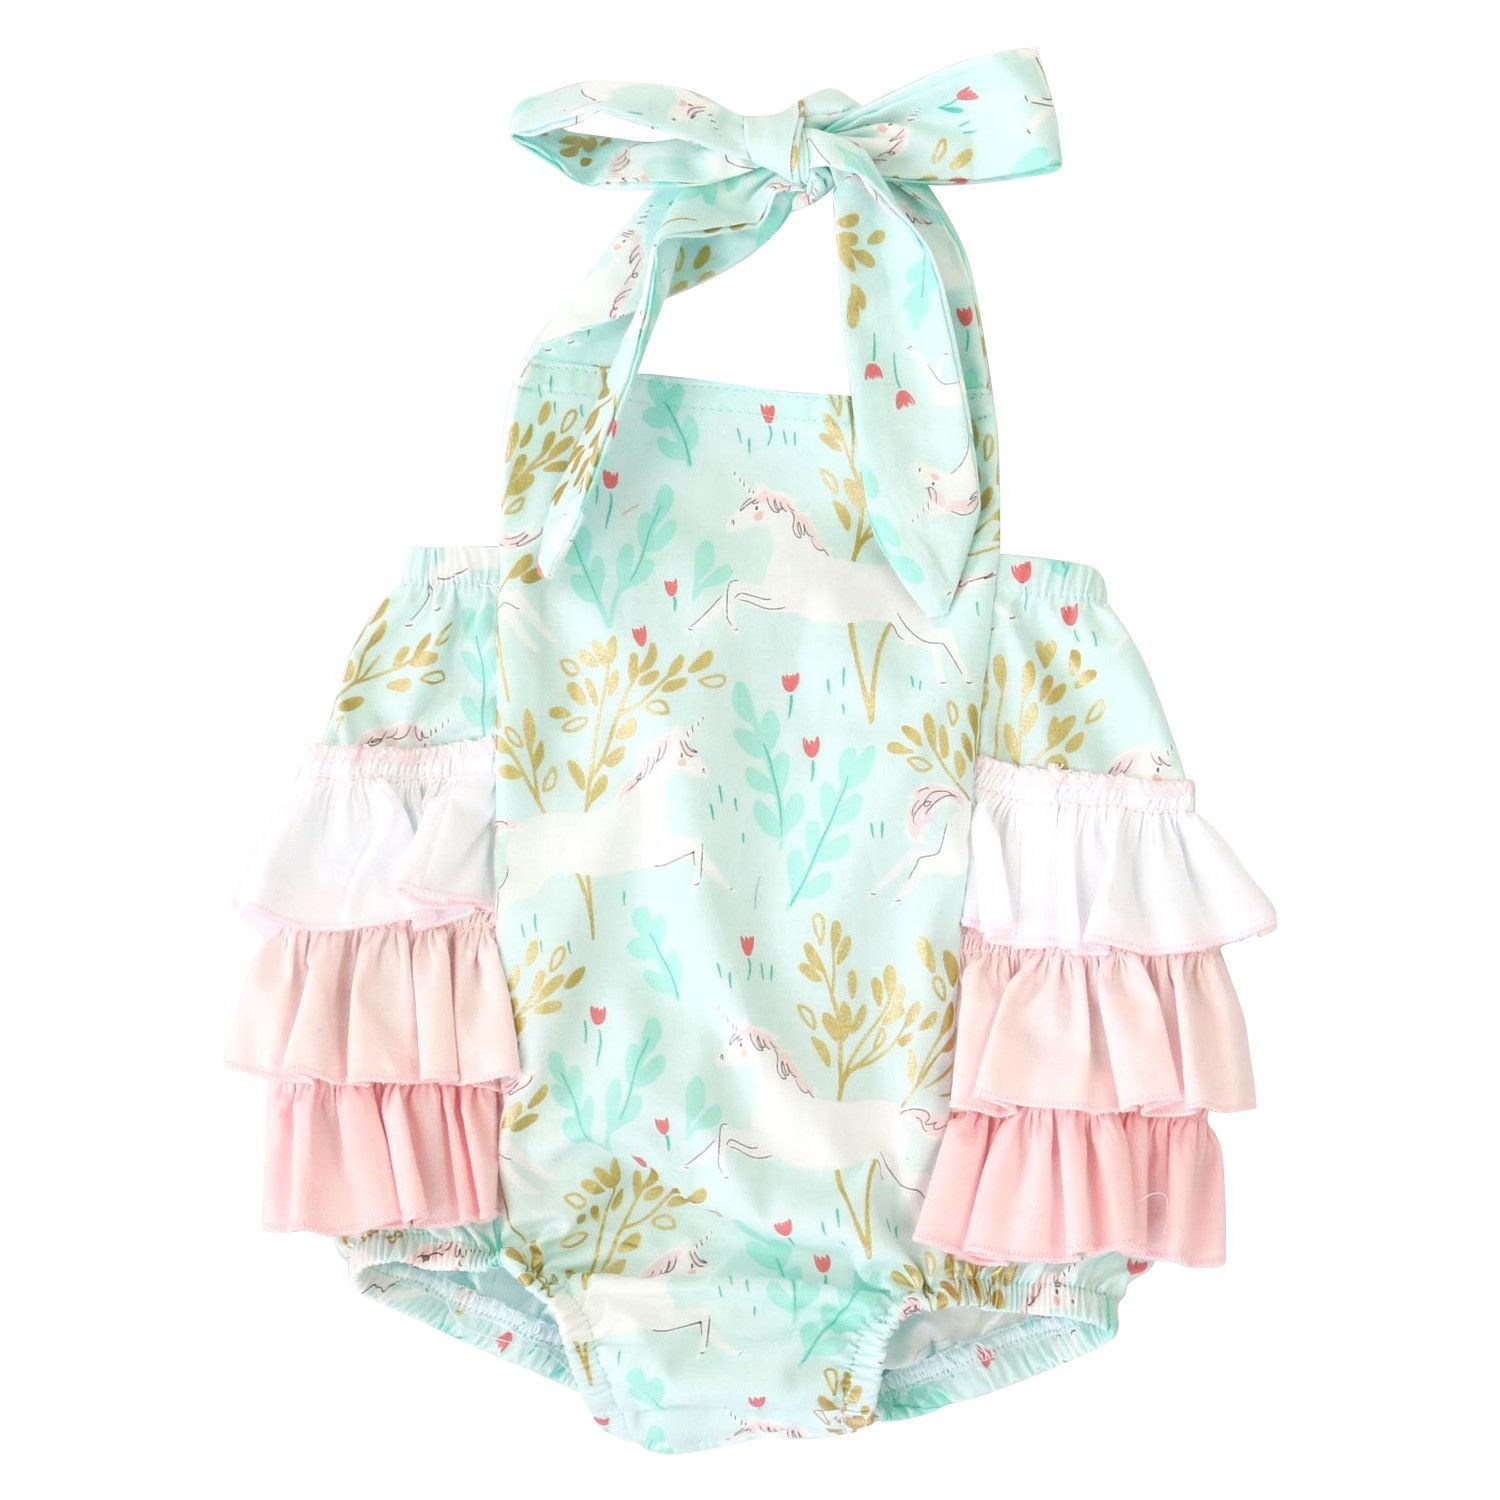 68f3ba1eef20 Our ruffle bubbles are the perfect outfit for summer fun and baby pictures!  Caden Lane s ruffle bubble rompers ...